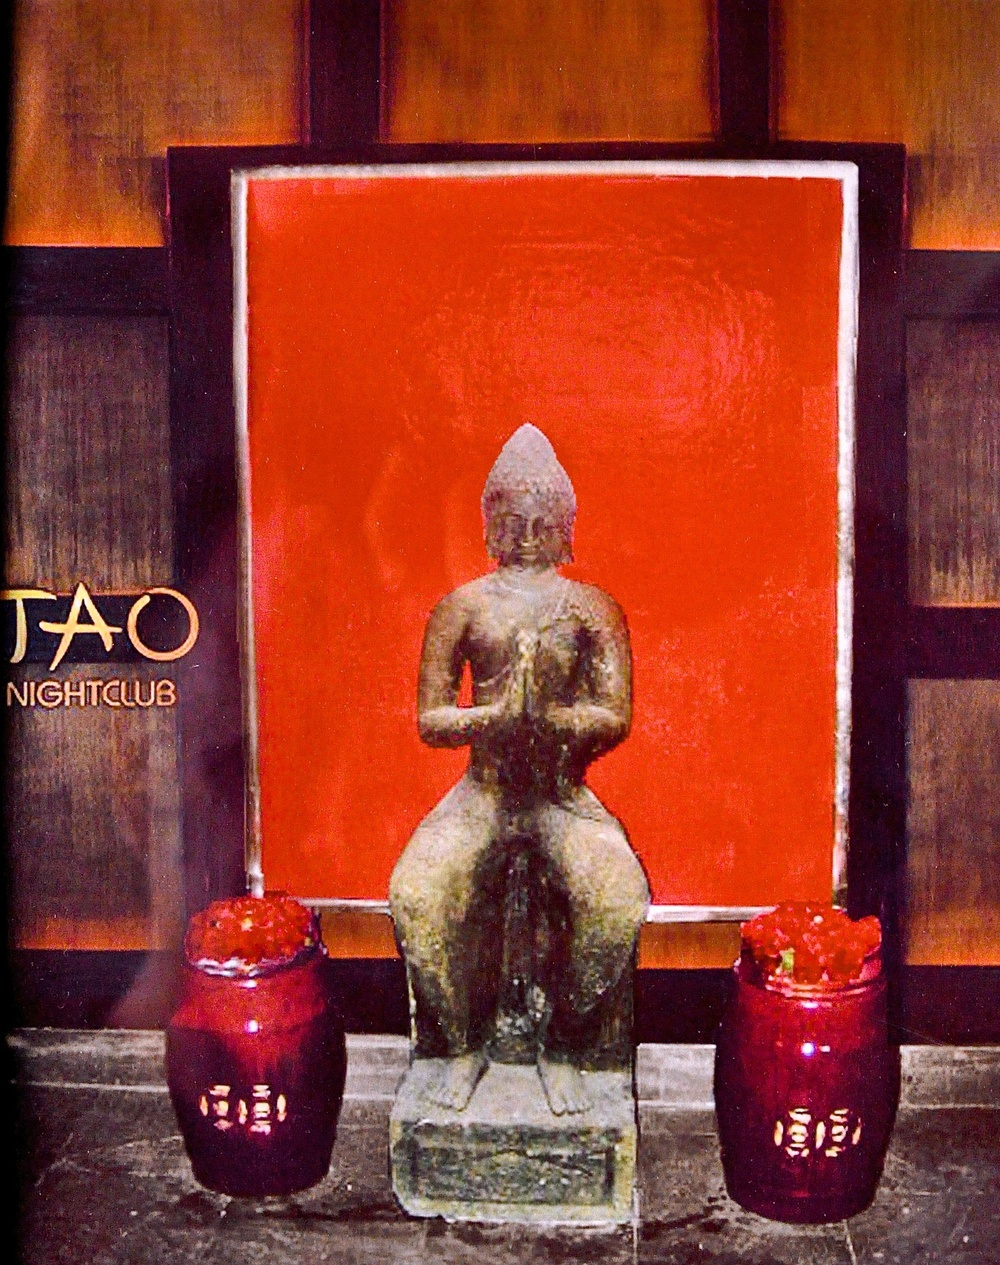 Tao Nightclub. Las Vegas, Nevada